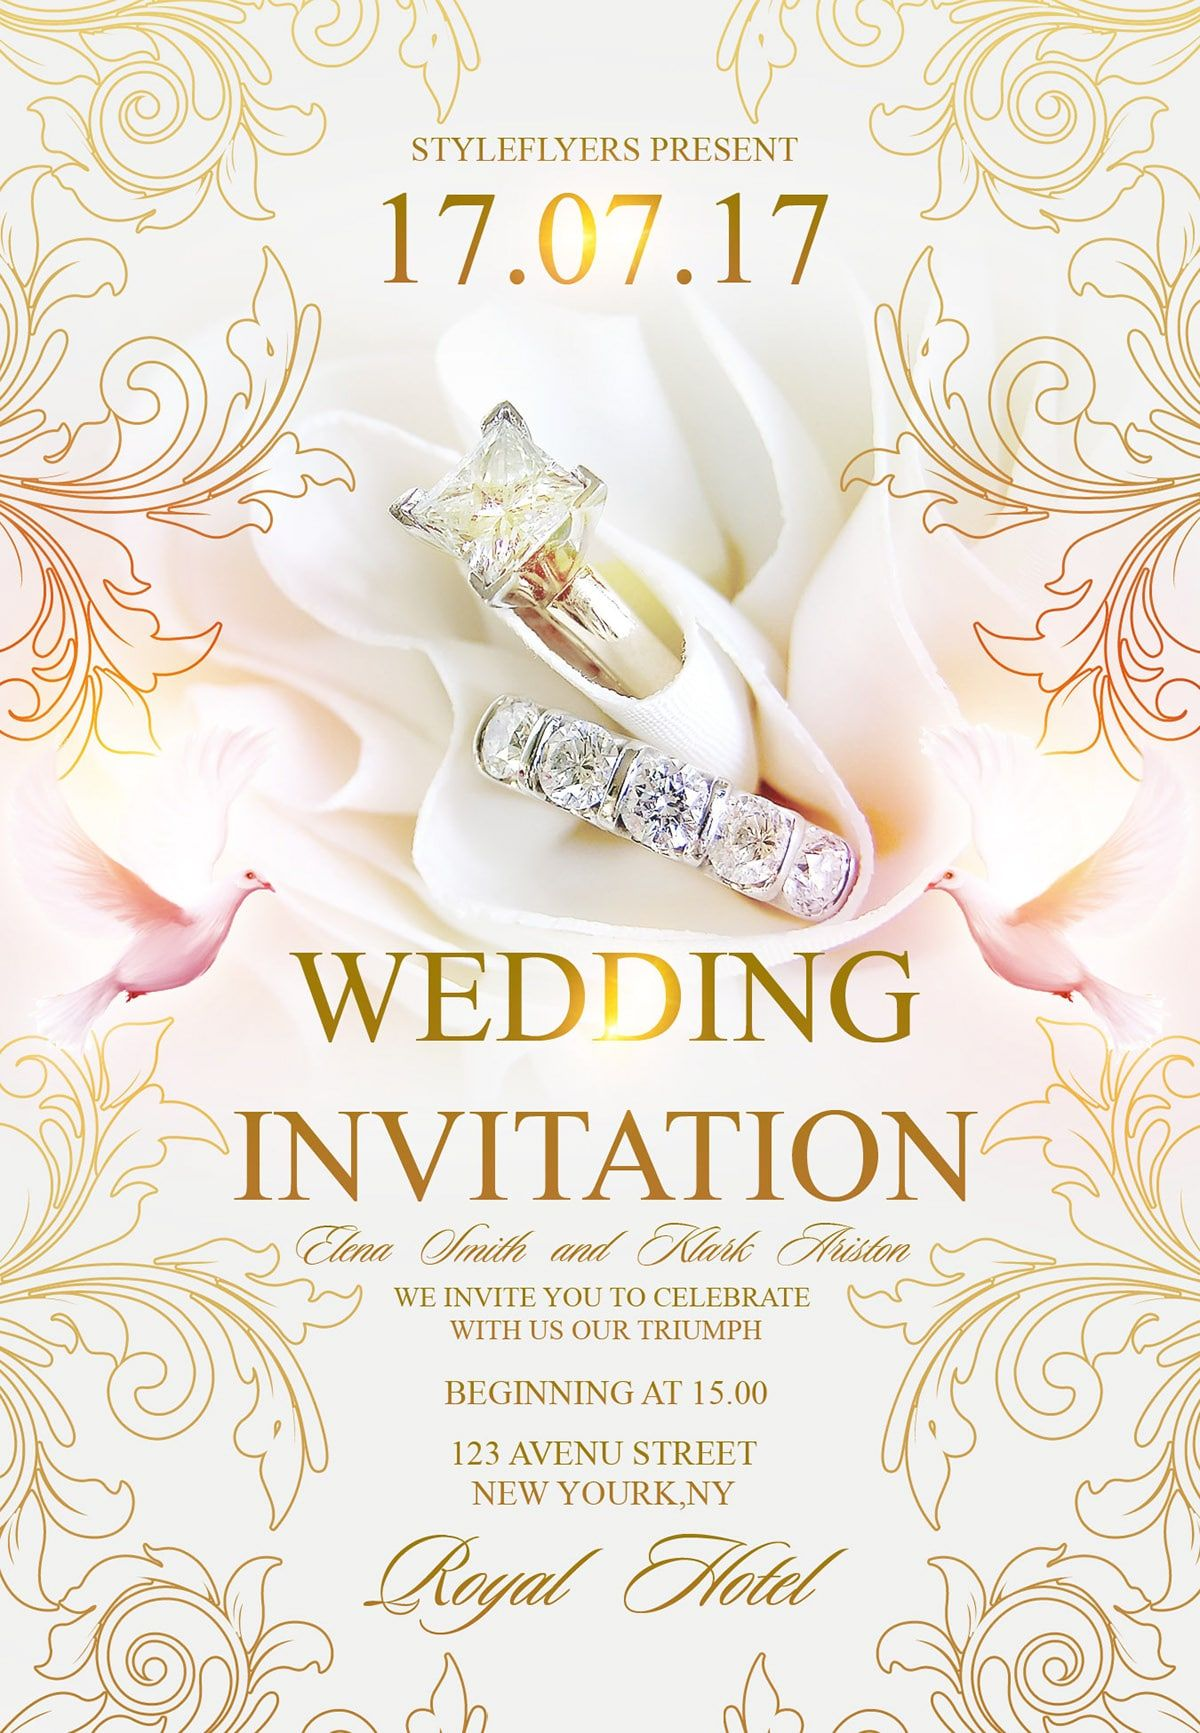 Wedding Invitation Download Free Psd Template Pixelsdesign Net Free Wedding Invitations Wedding Invitations Modern Wedding Invitation Wording